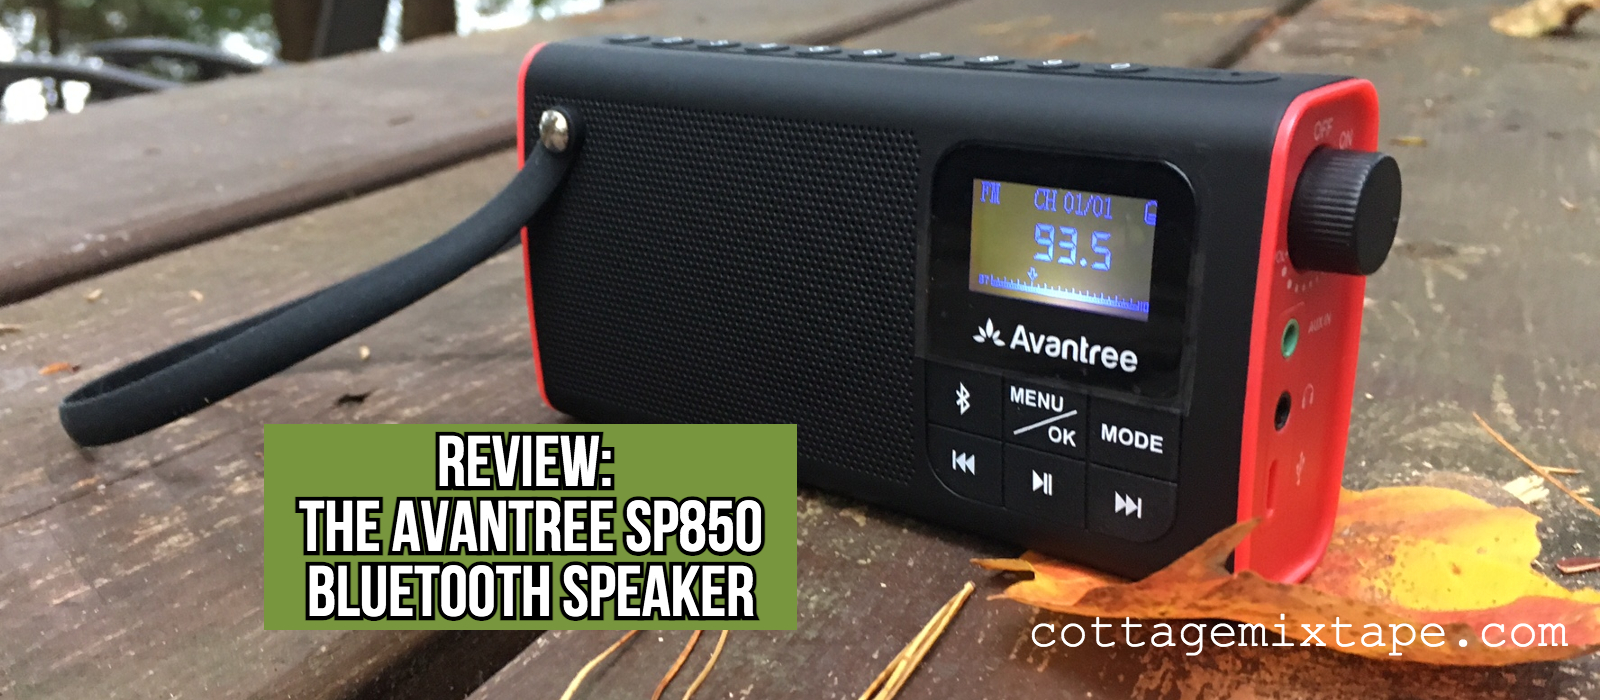 Avantree SP850 Bluetooth Radio Speaker on a outdoor table in radio mode on 93.5